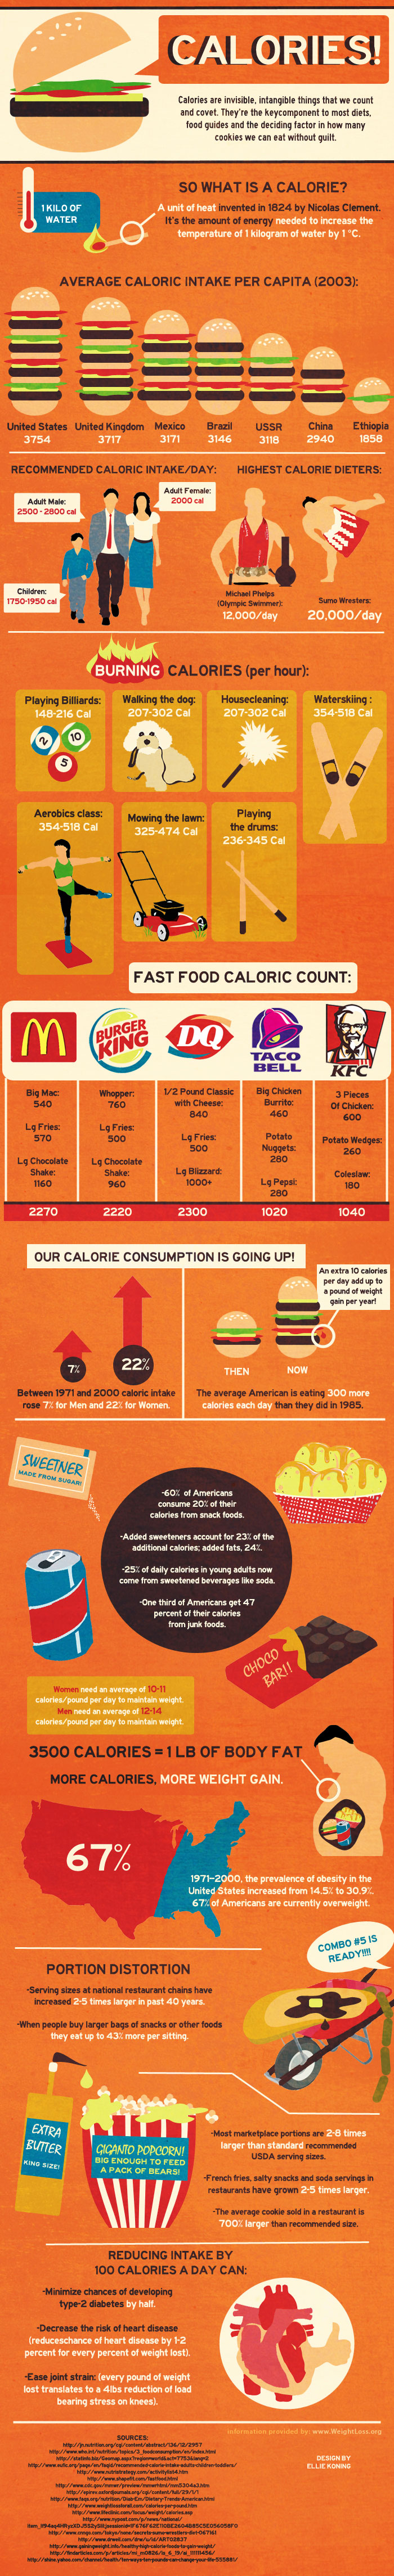 Calorie Count - Important Facts